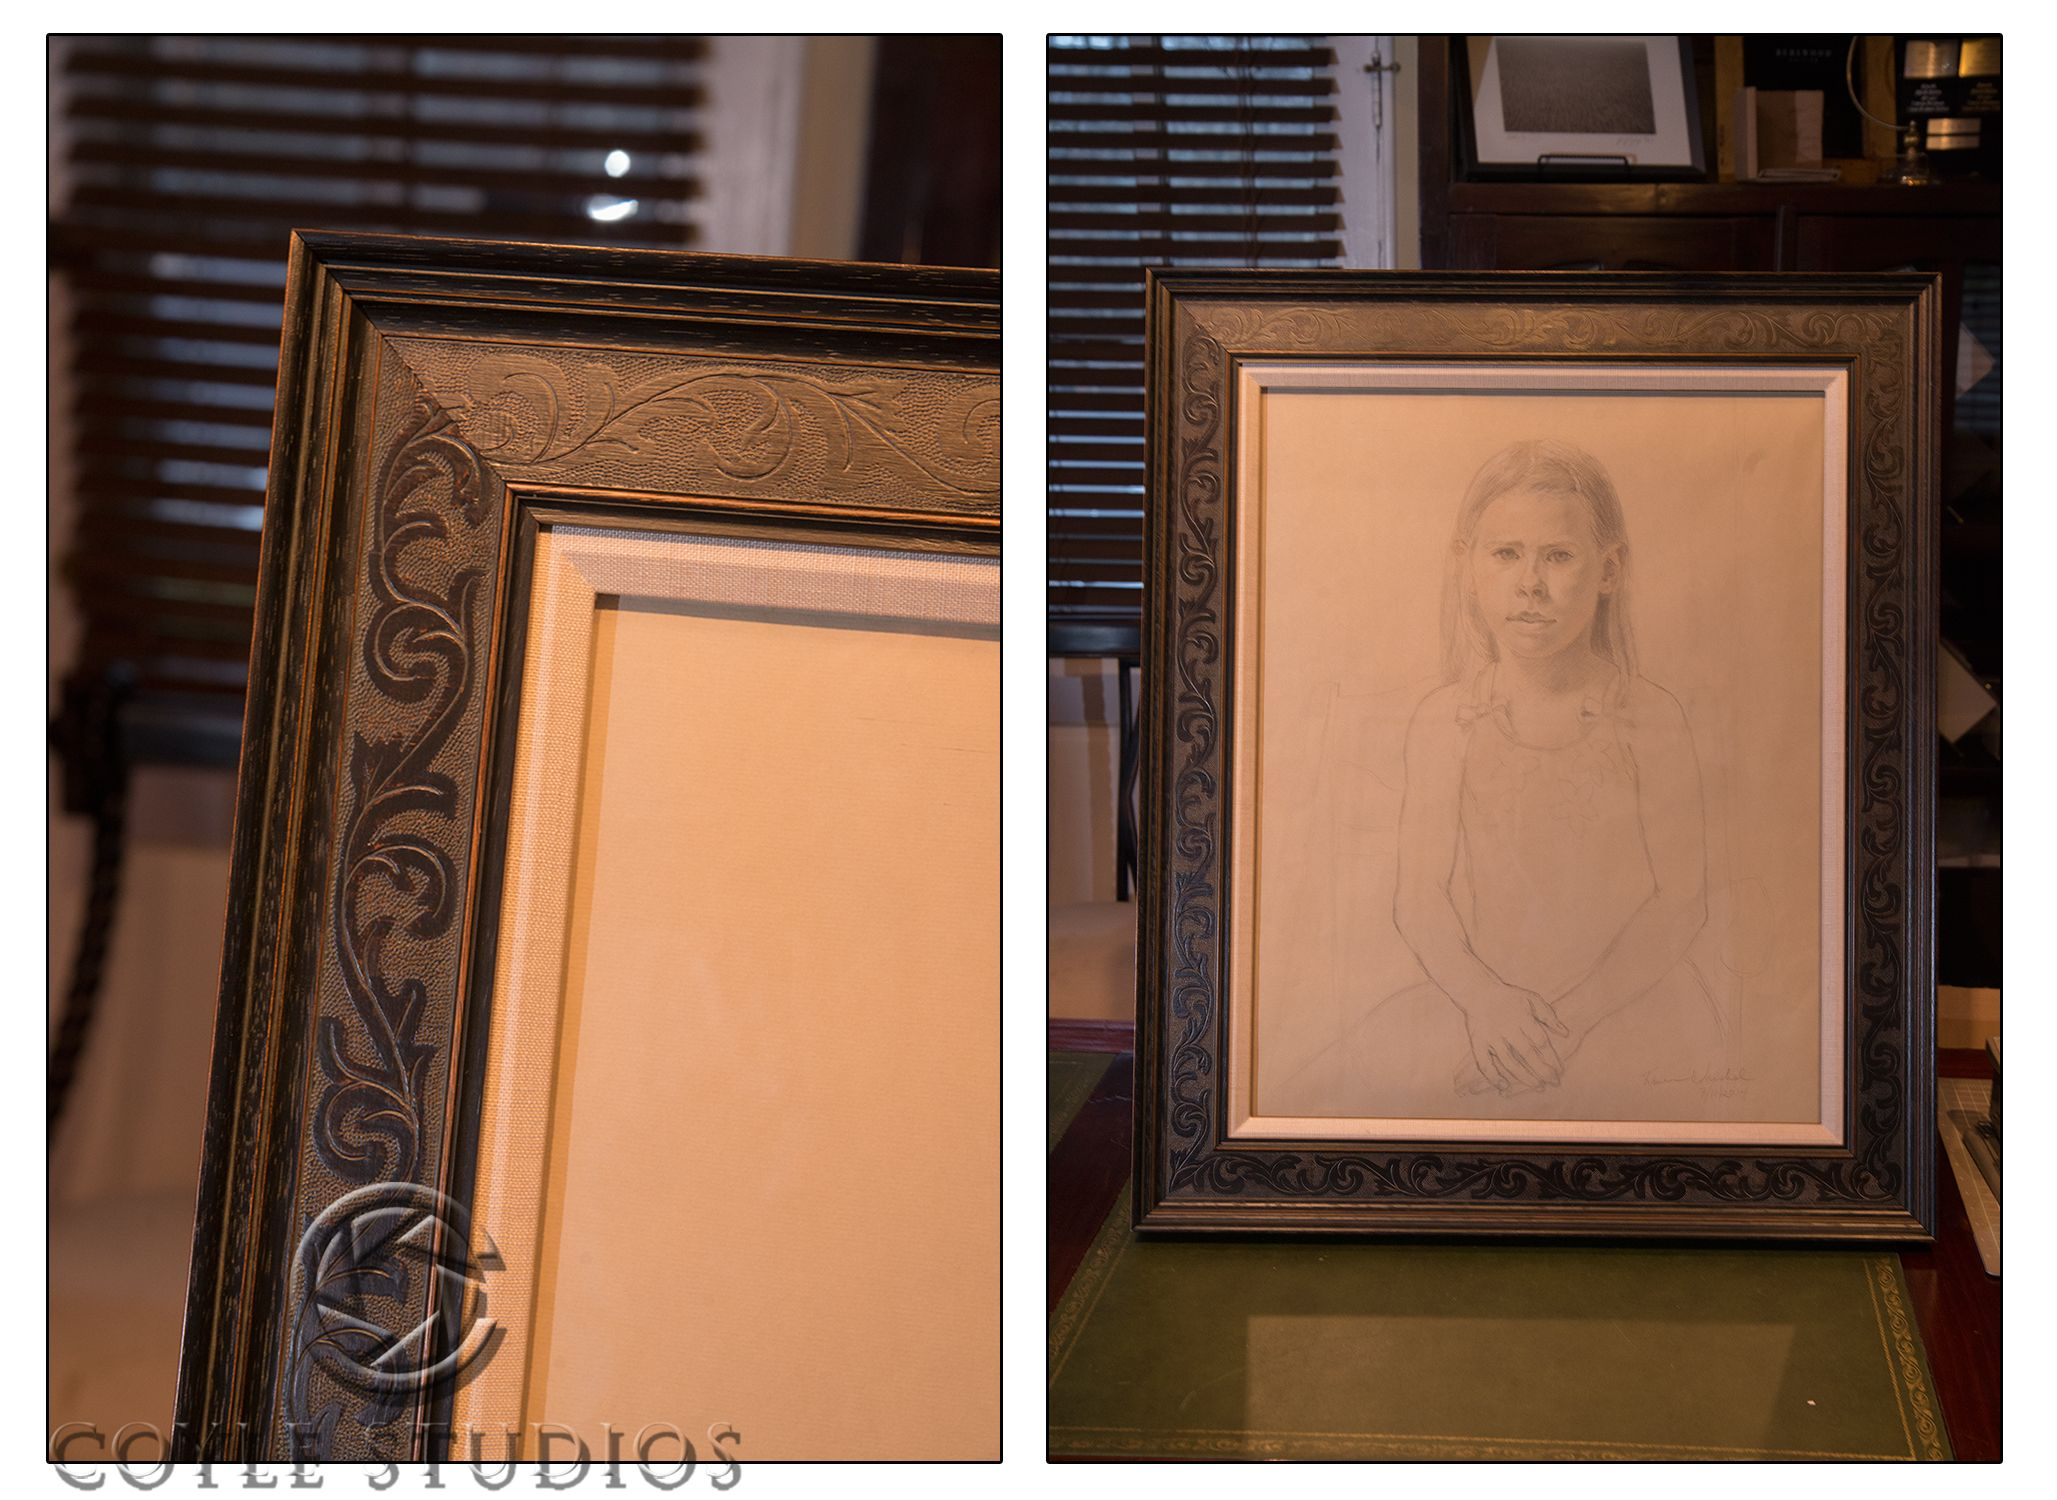 Artist Karen Warshal drew this fantastic portrait. The liner and french design frame really bring out the elegance of her craft.